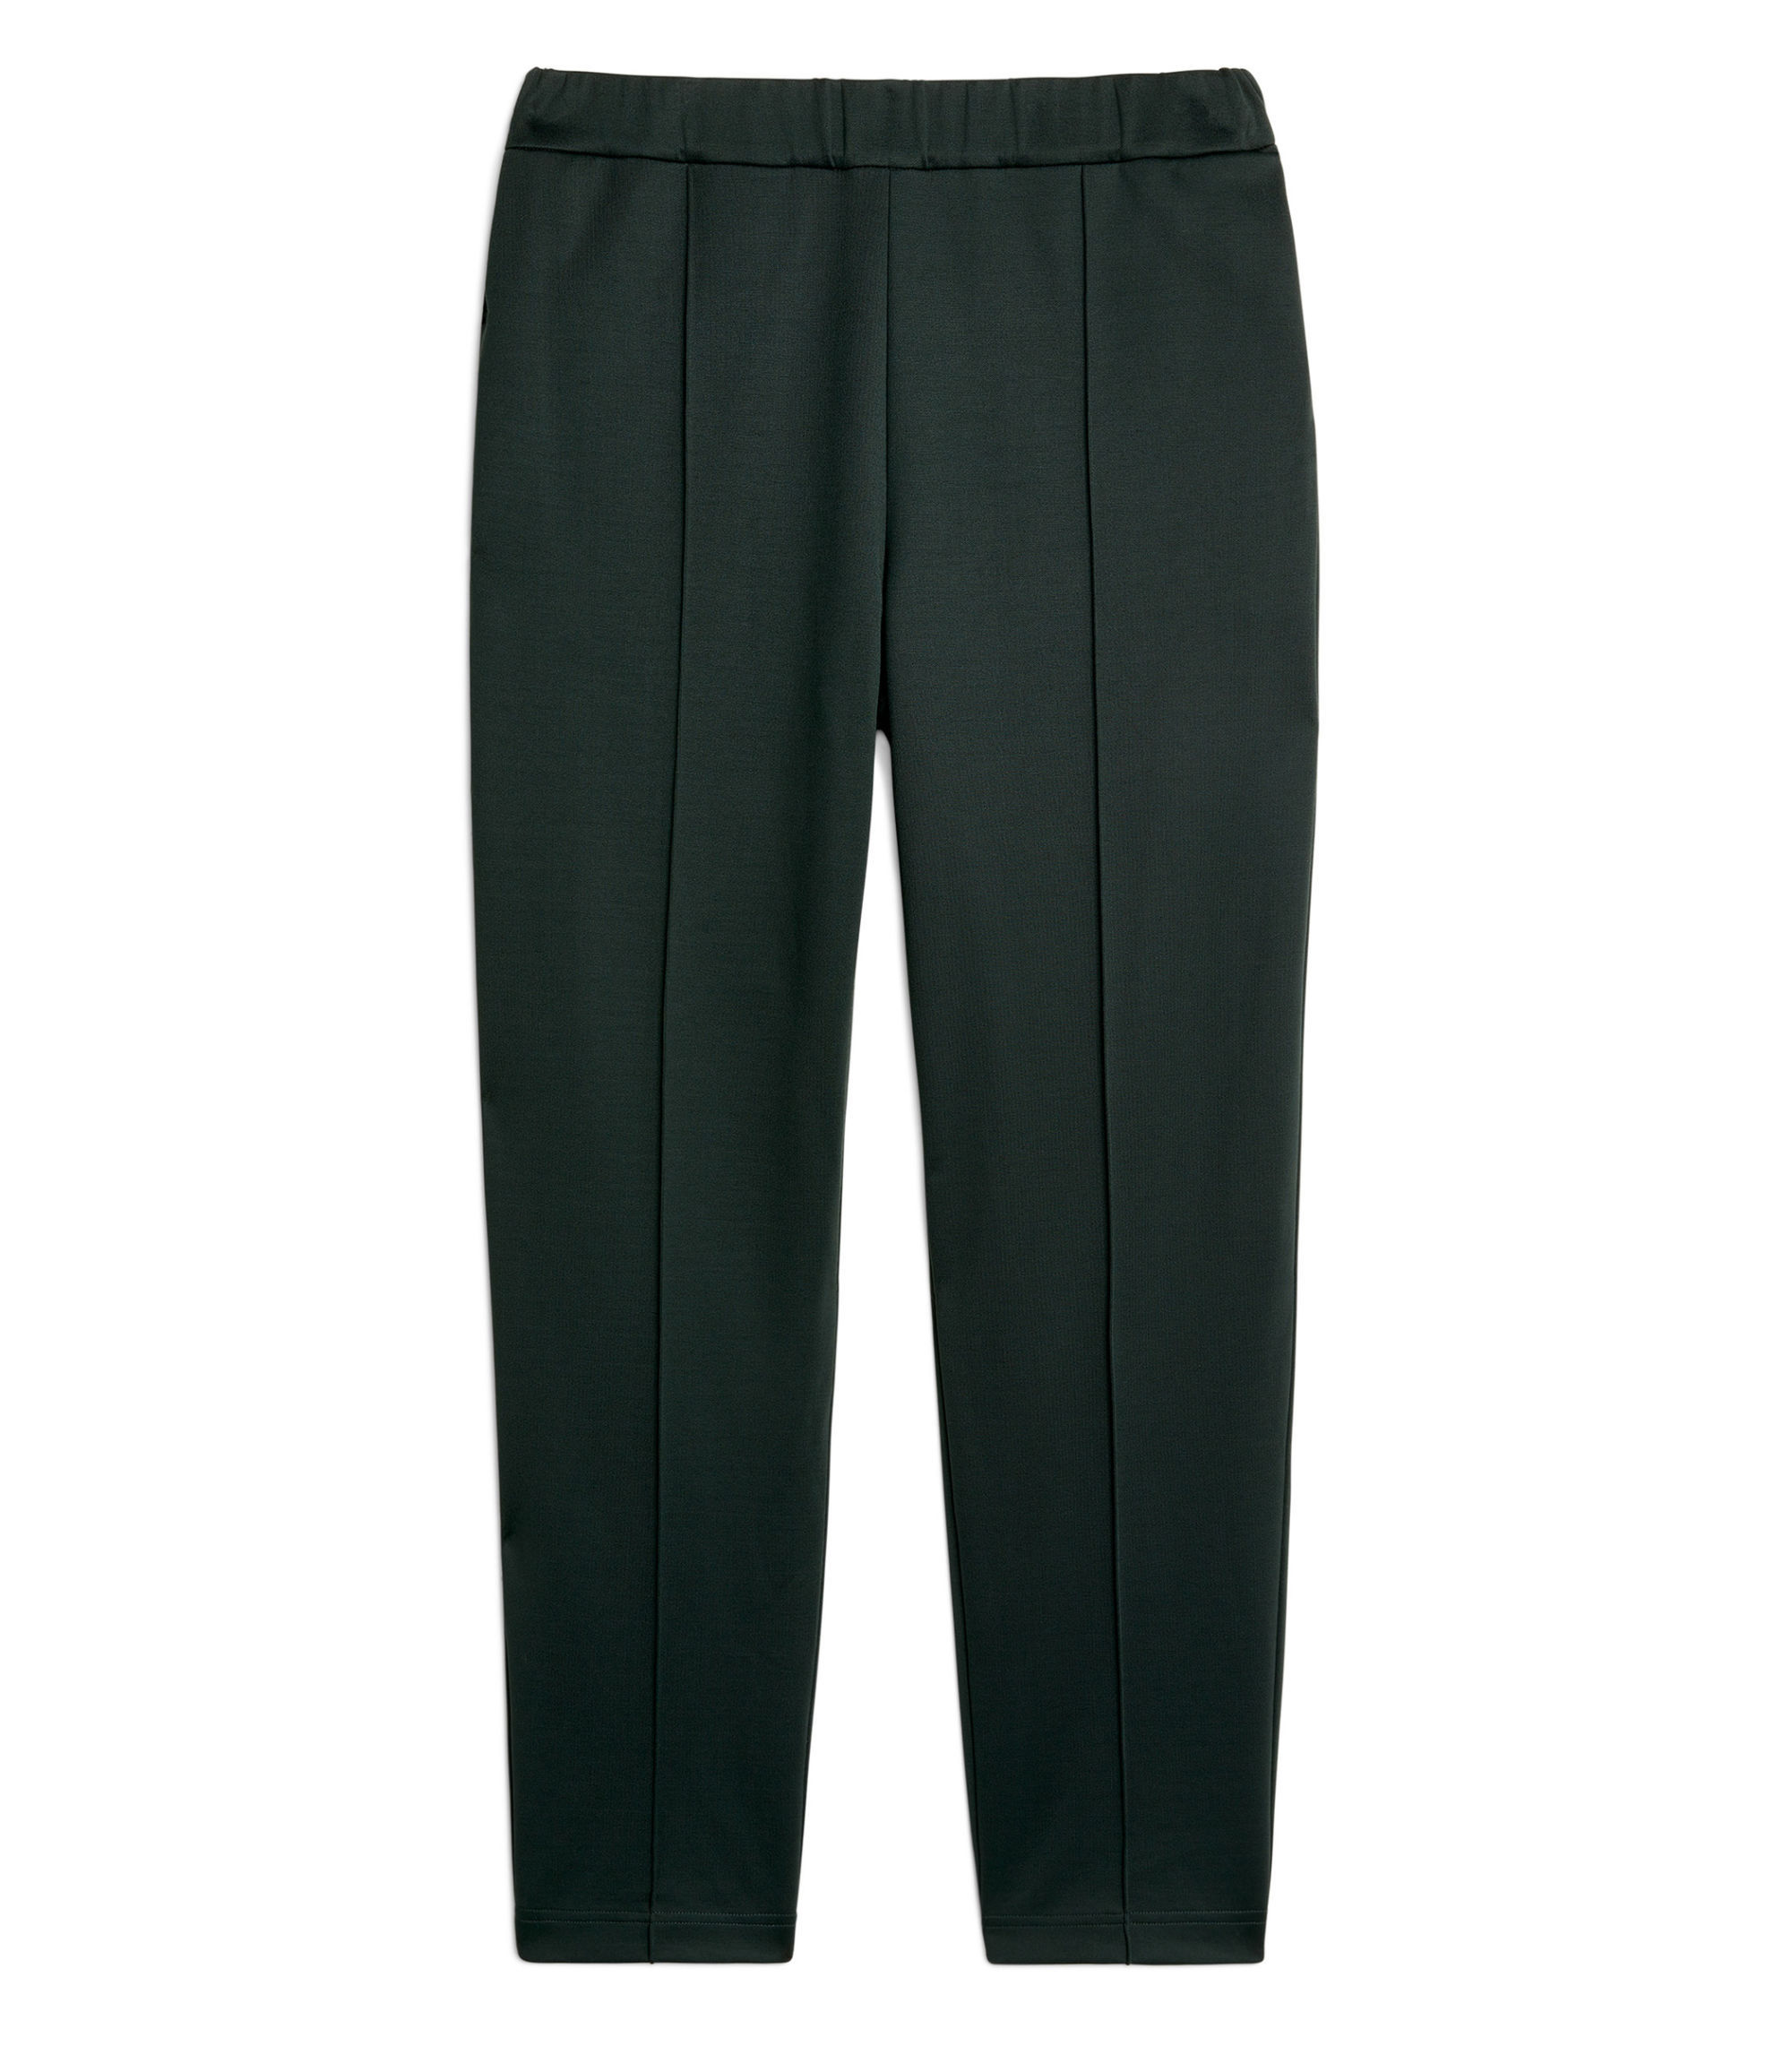 Tapered Pintuck Trousers  £55